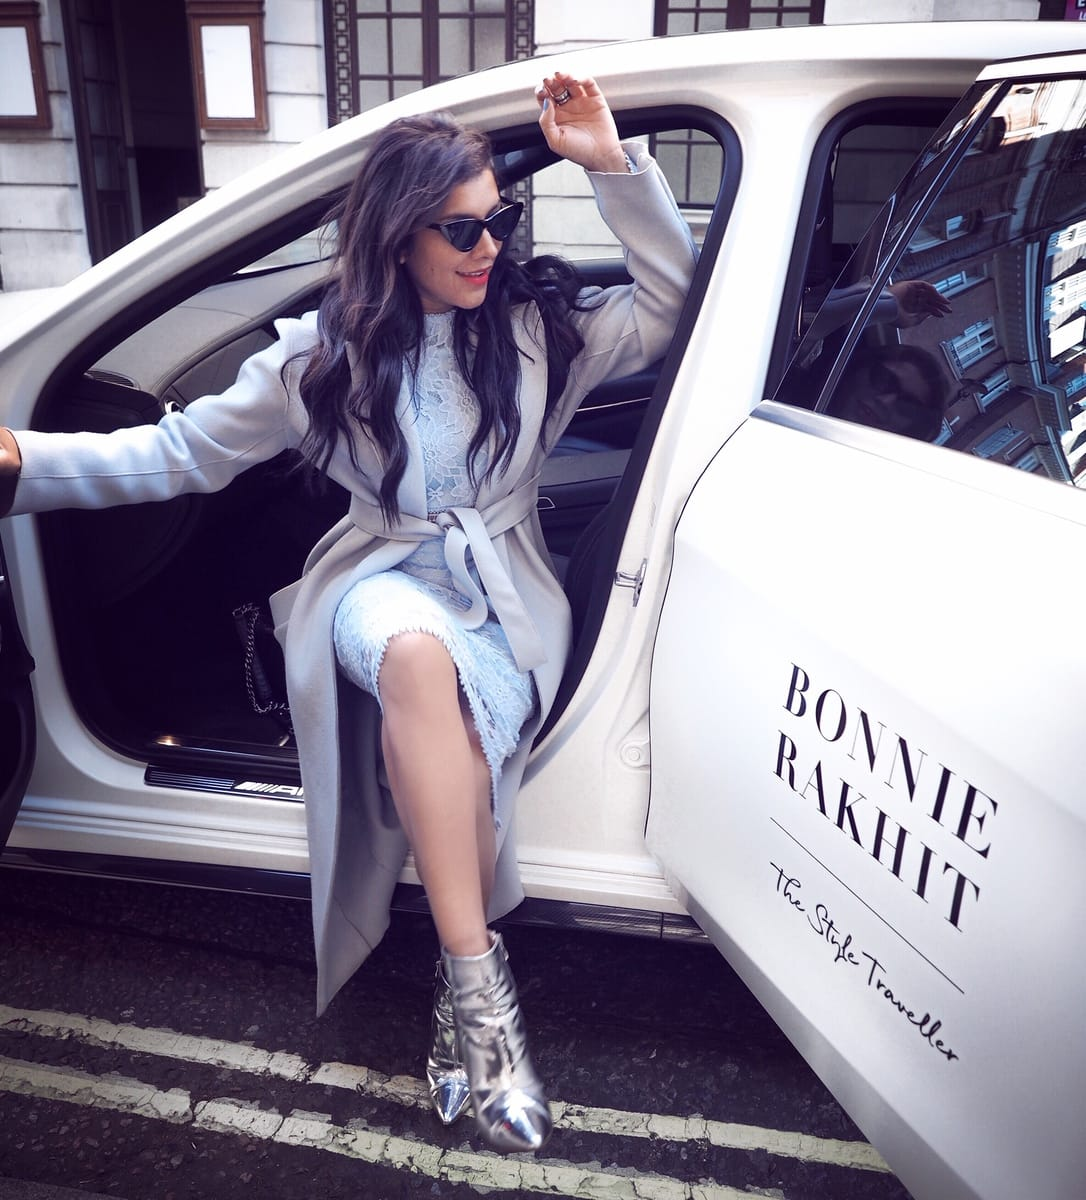 Getting Naked With Interview with Bonnie Rakhit The Style Traveller